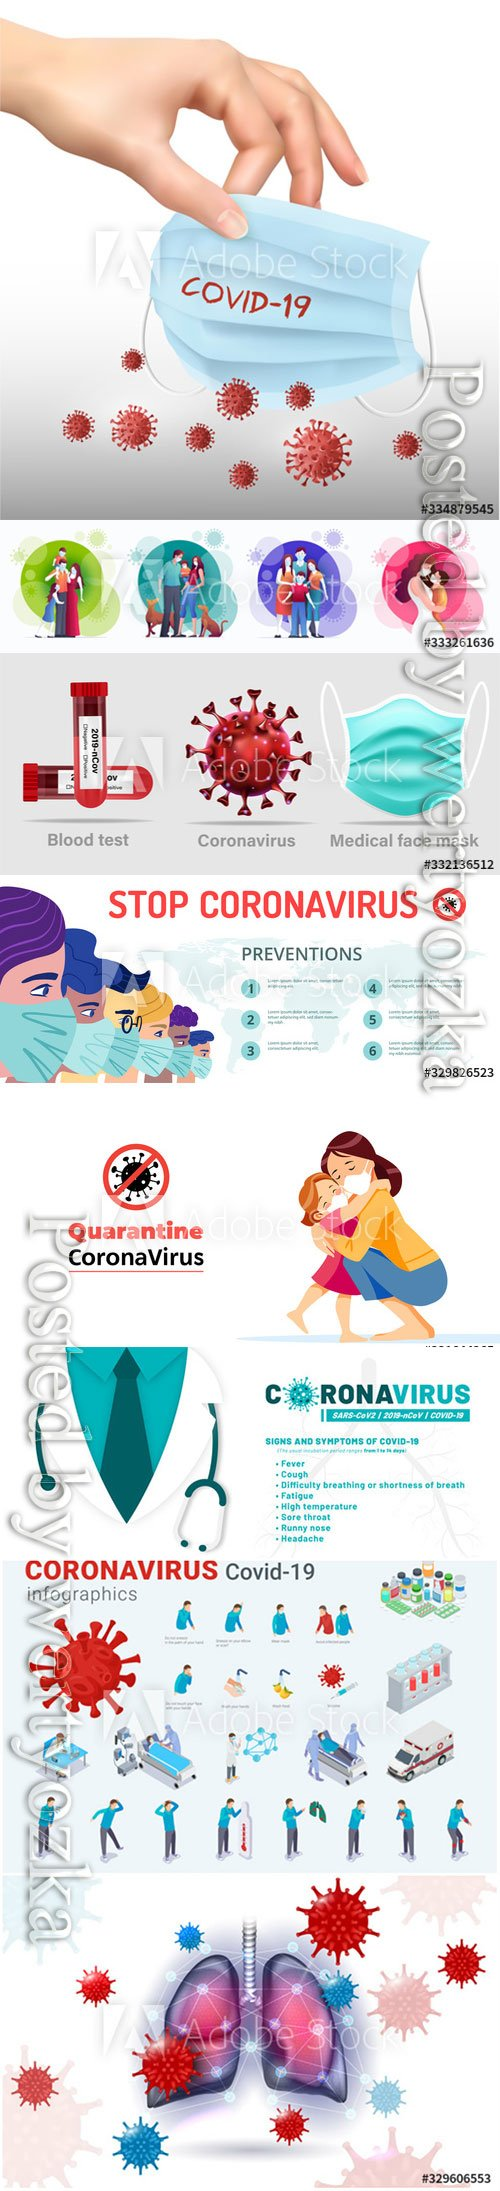 Coronavirus treatment concept vector design